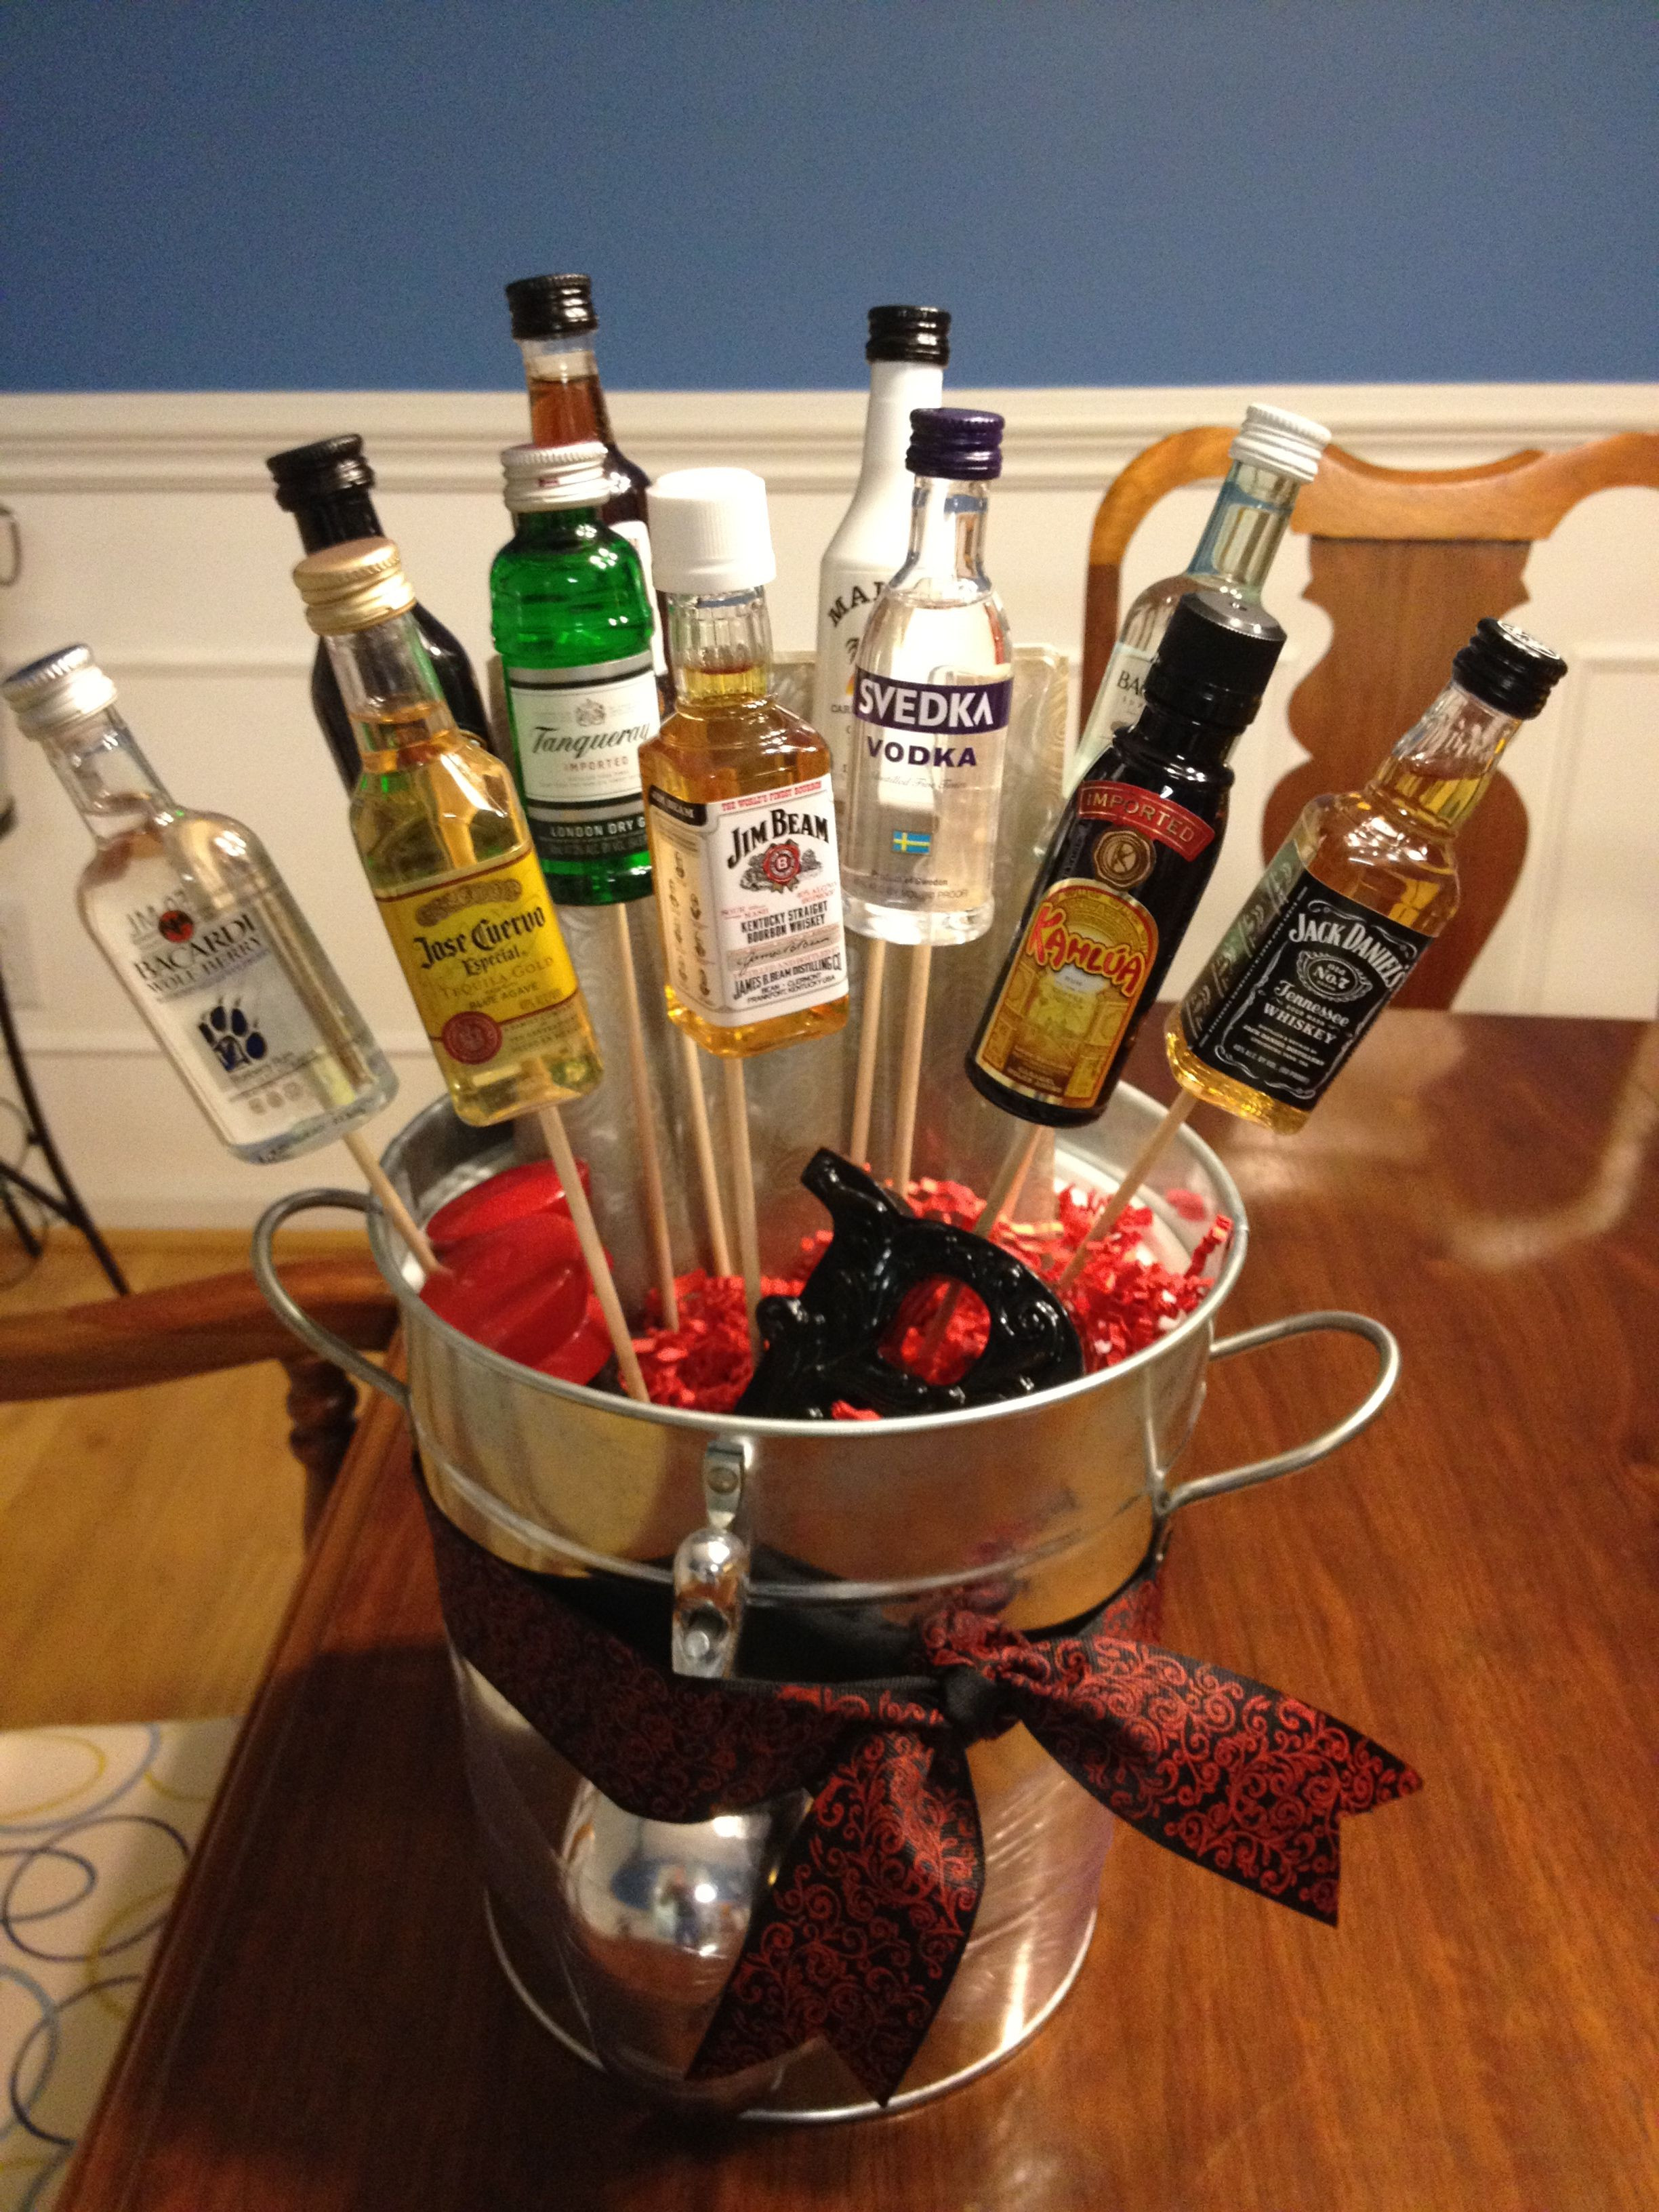 Best ideas about Stock The Bar Gift Ideas . Save or Pin Stock the Bar t Wedding shower ideas for Now.